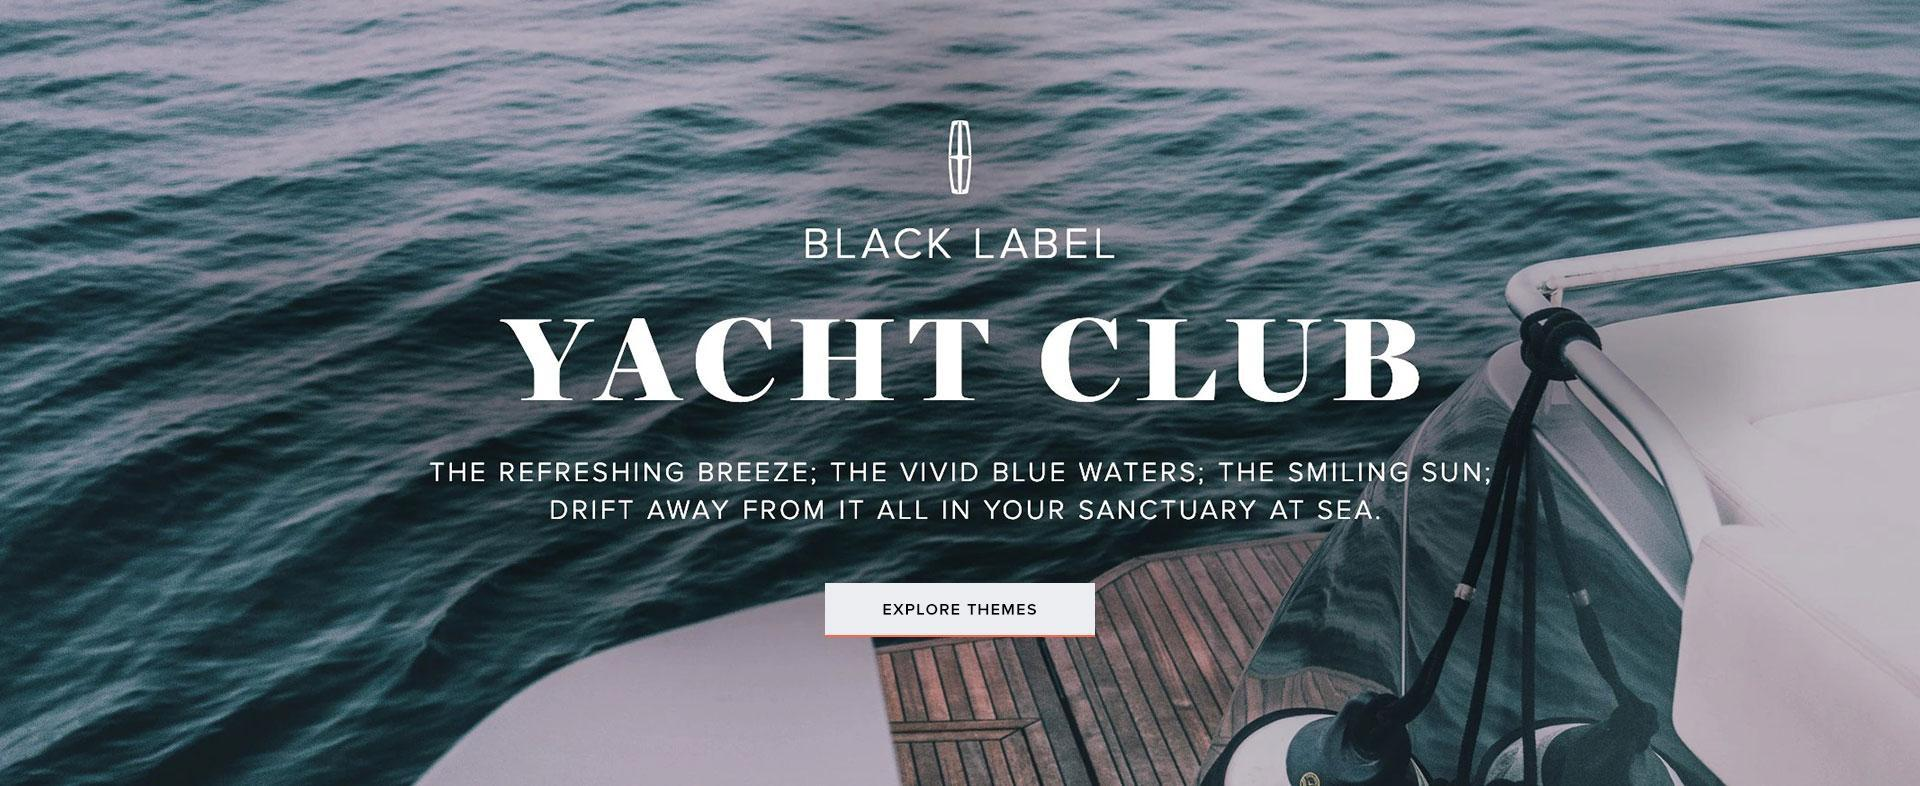 Lincoln Black Label Yacht Club | South Bay Lincoln